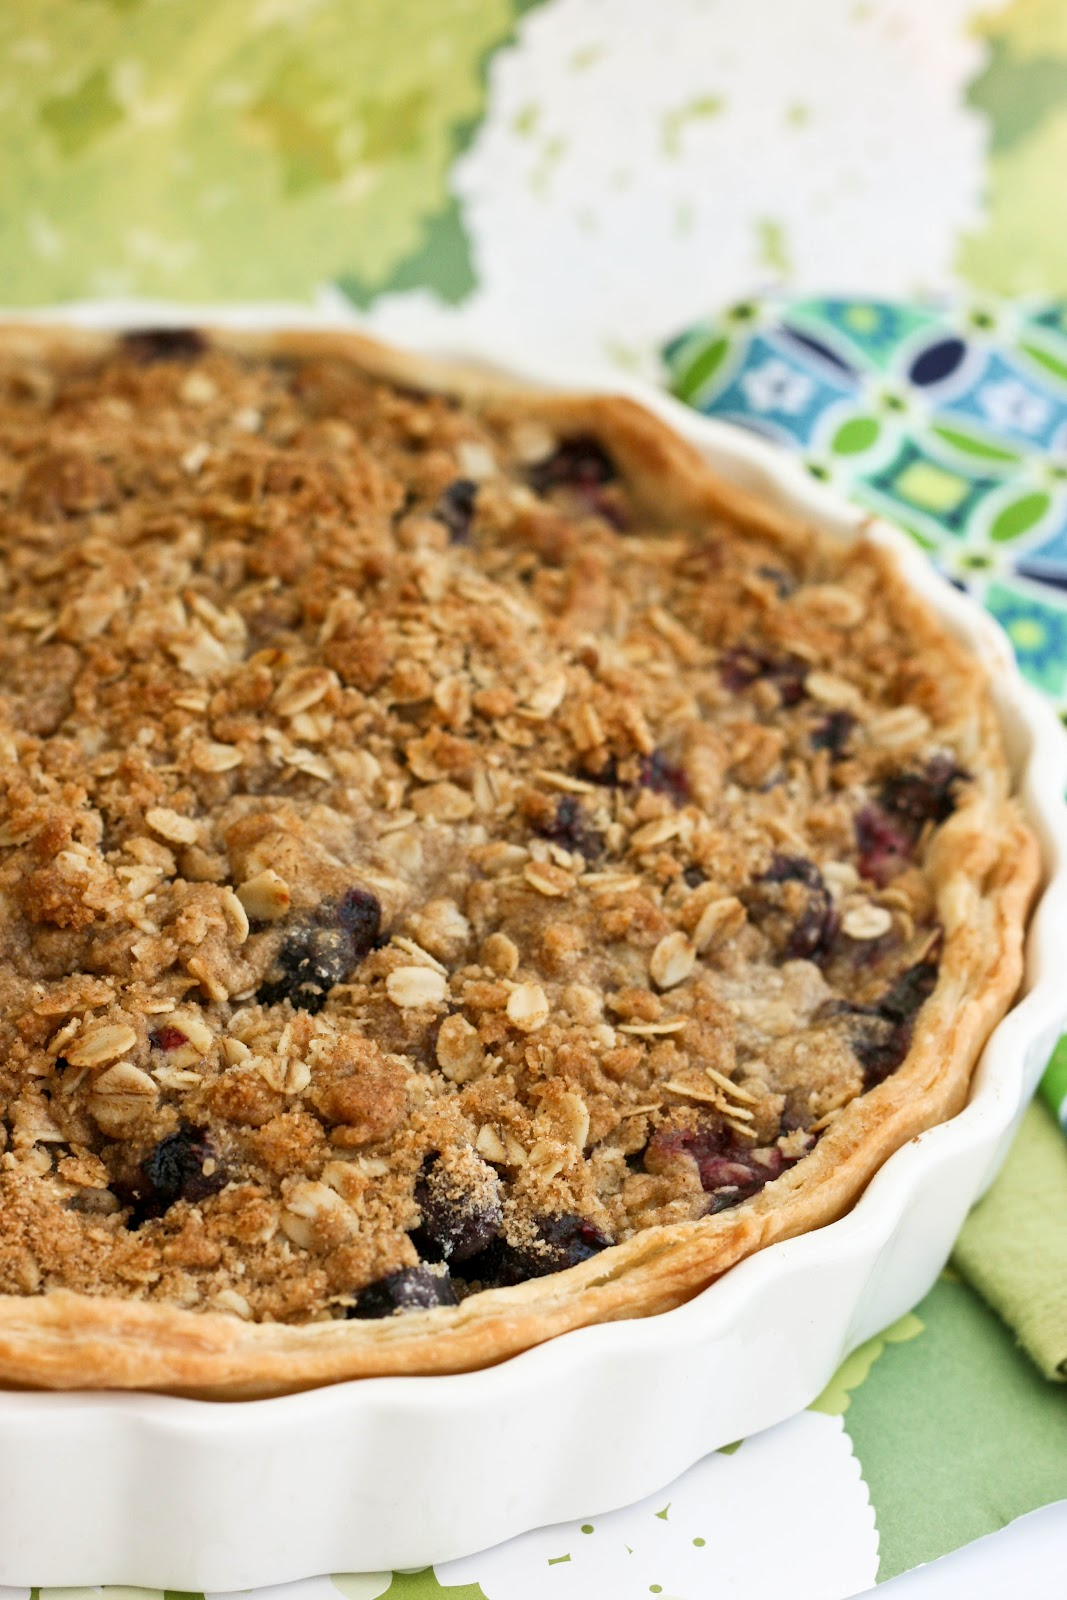 ... crumble crust apple crumble pie cherry crumble blueberry crumble pie